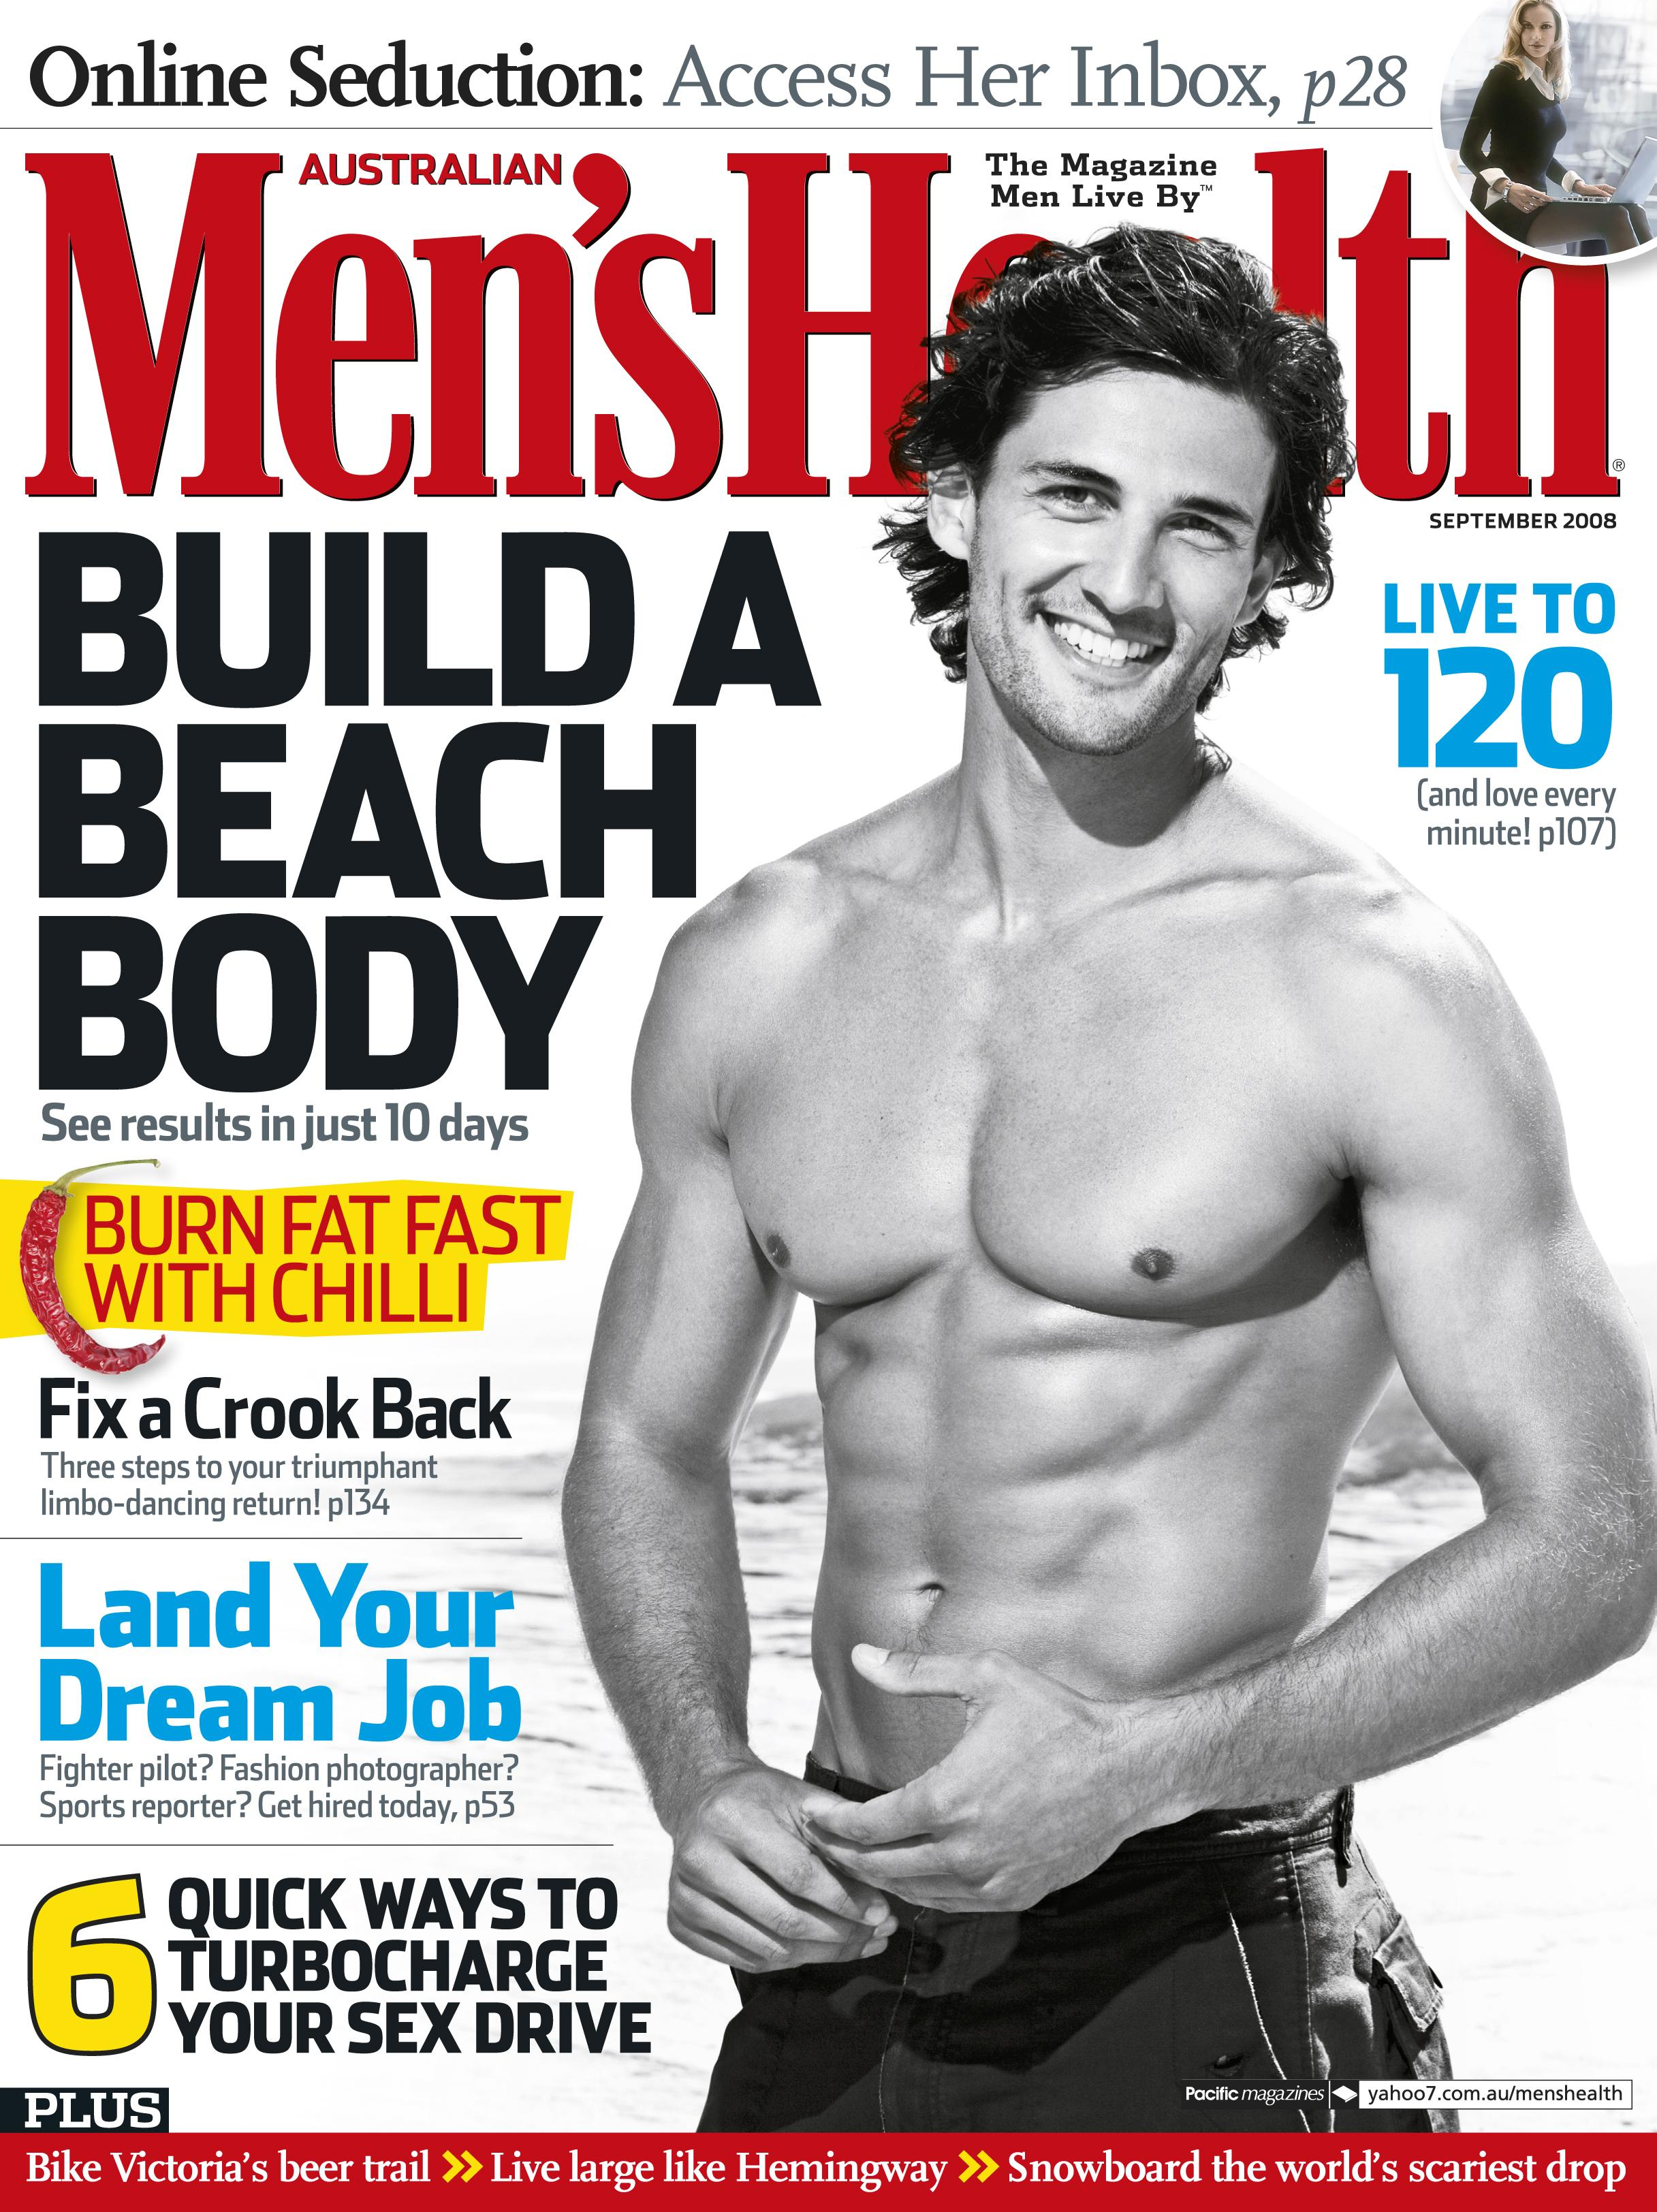 mens-health-magazine.jpg